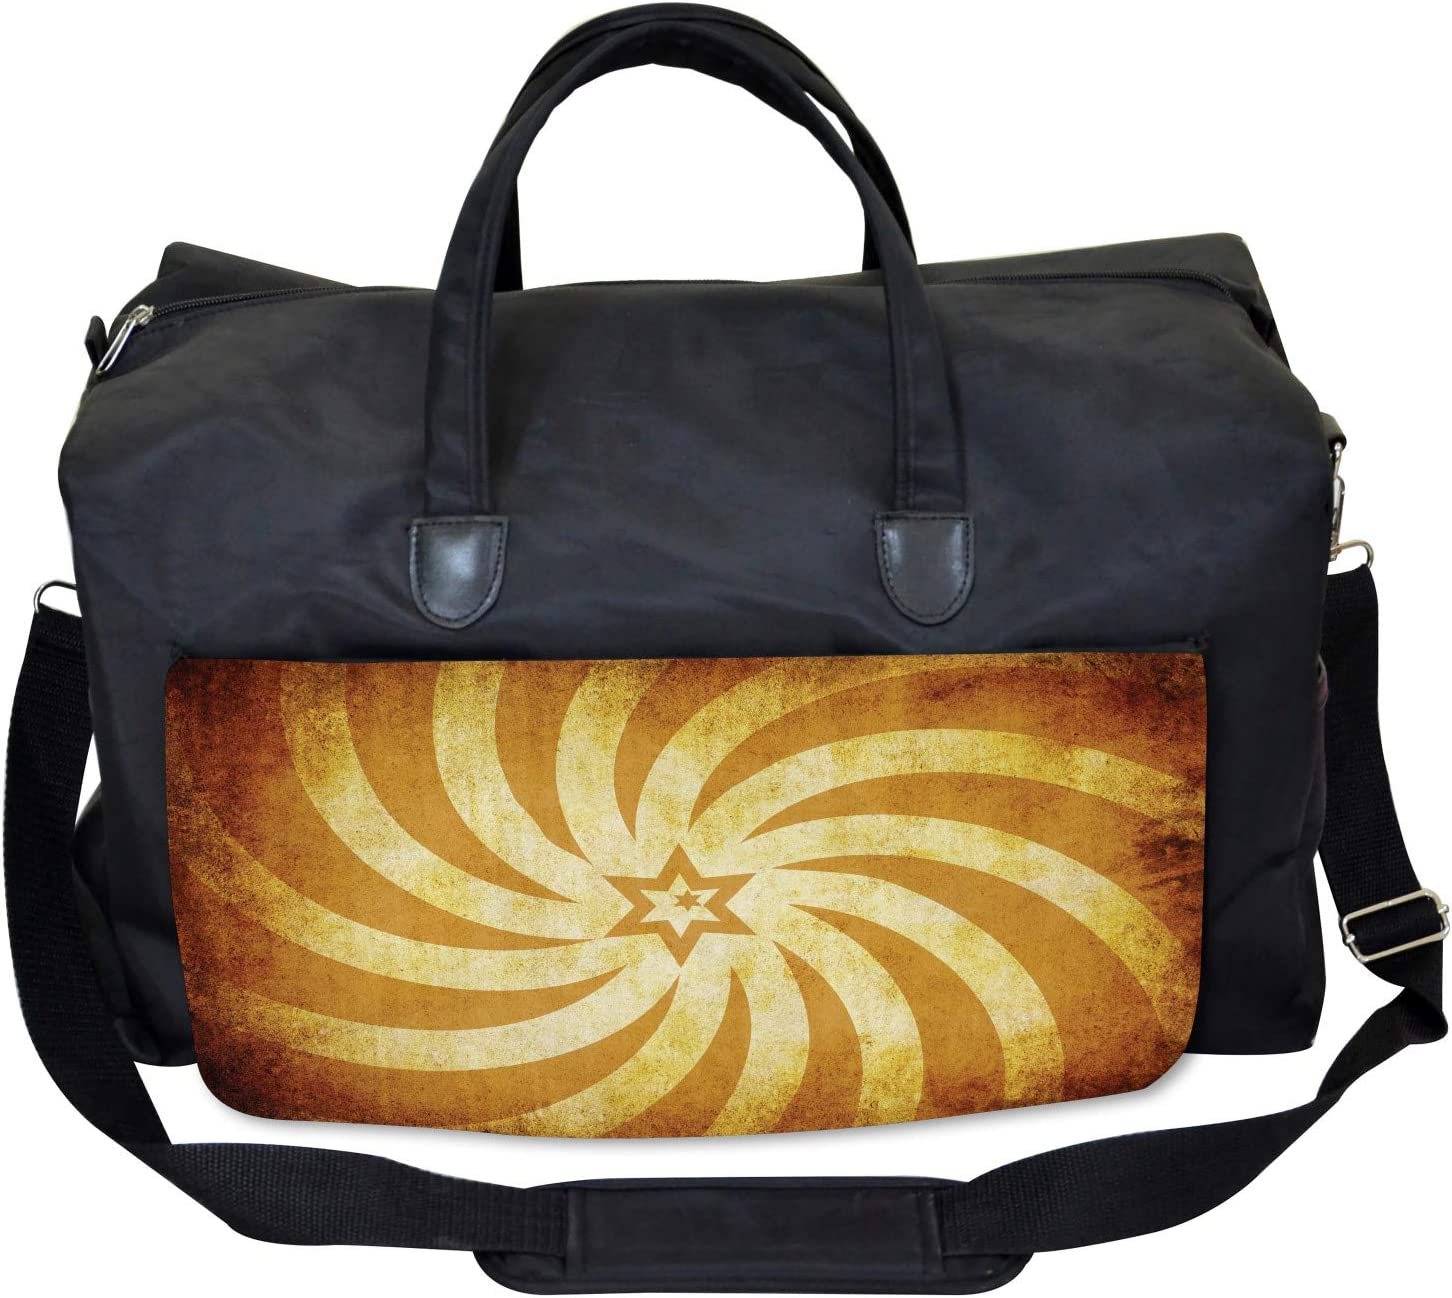 Grunge Star Sunrays Large Weekender Carry-on Ambesonne Vintage Gym Bag